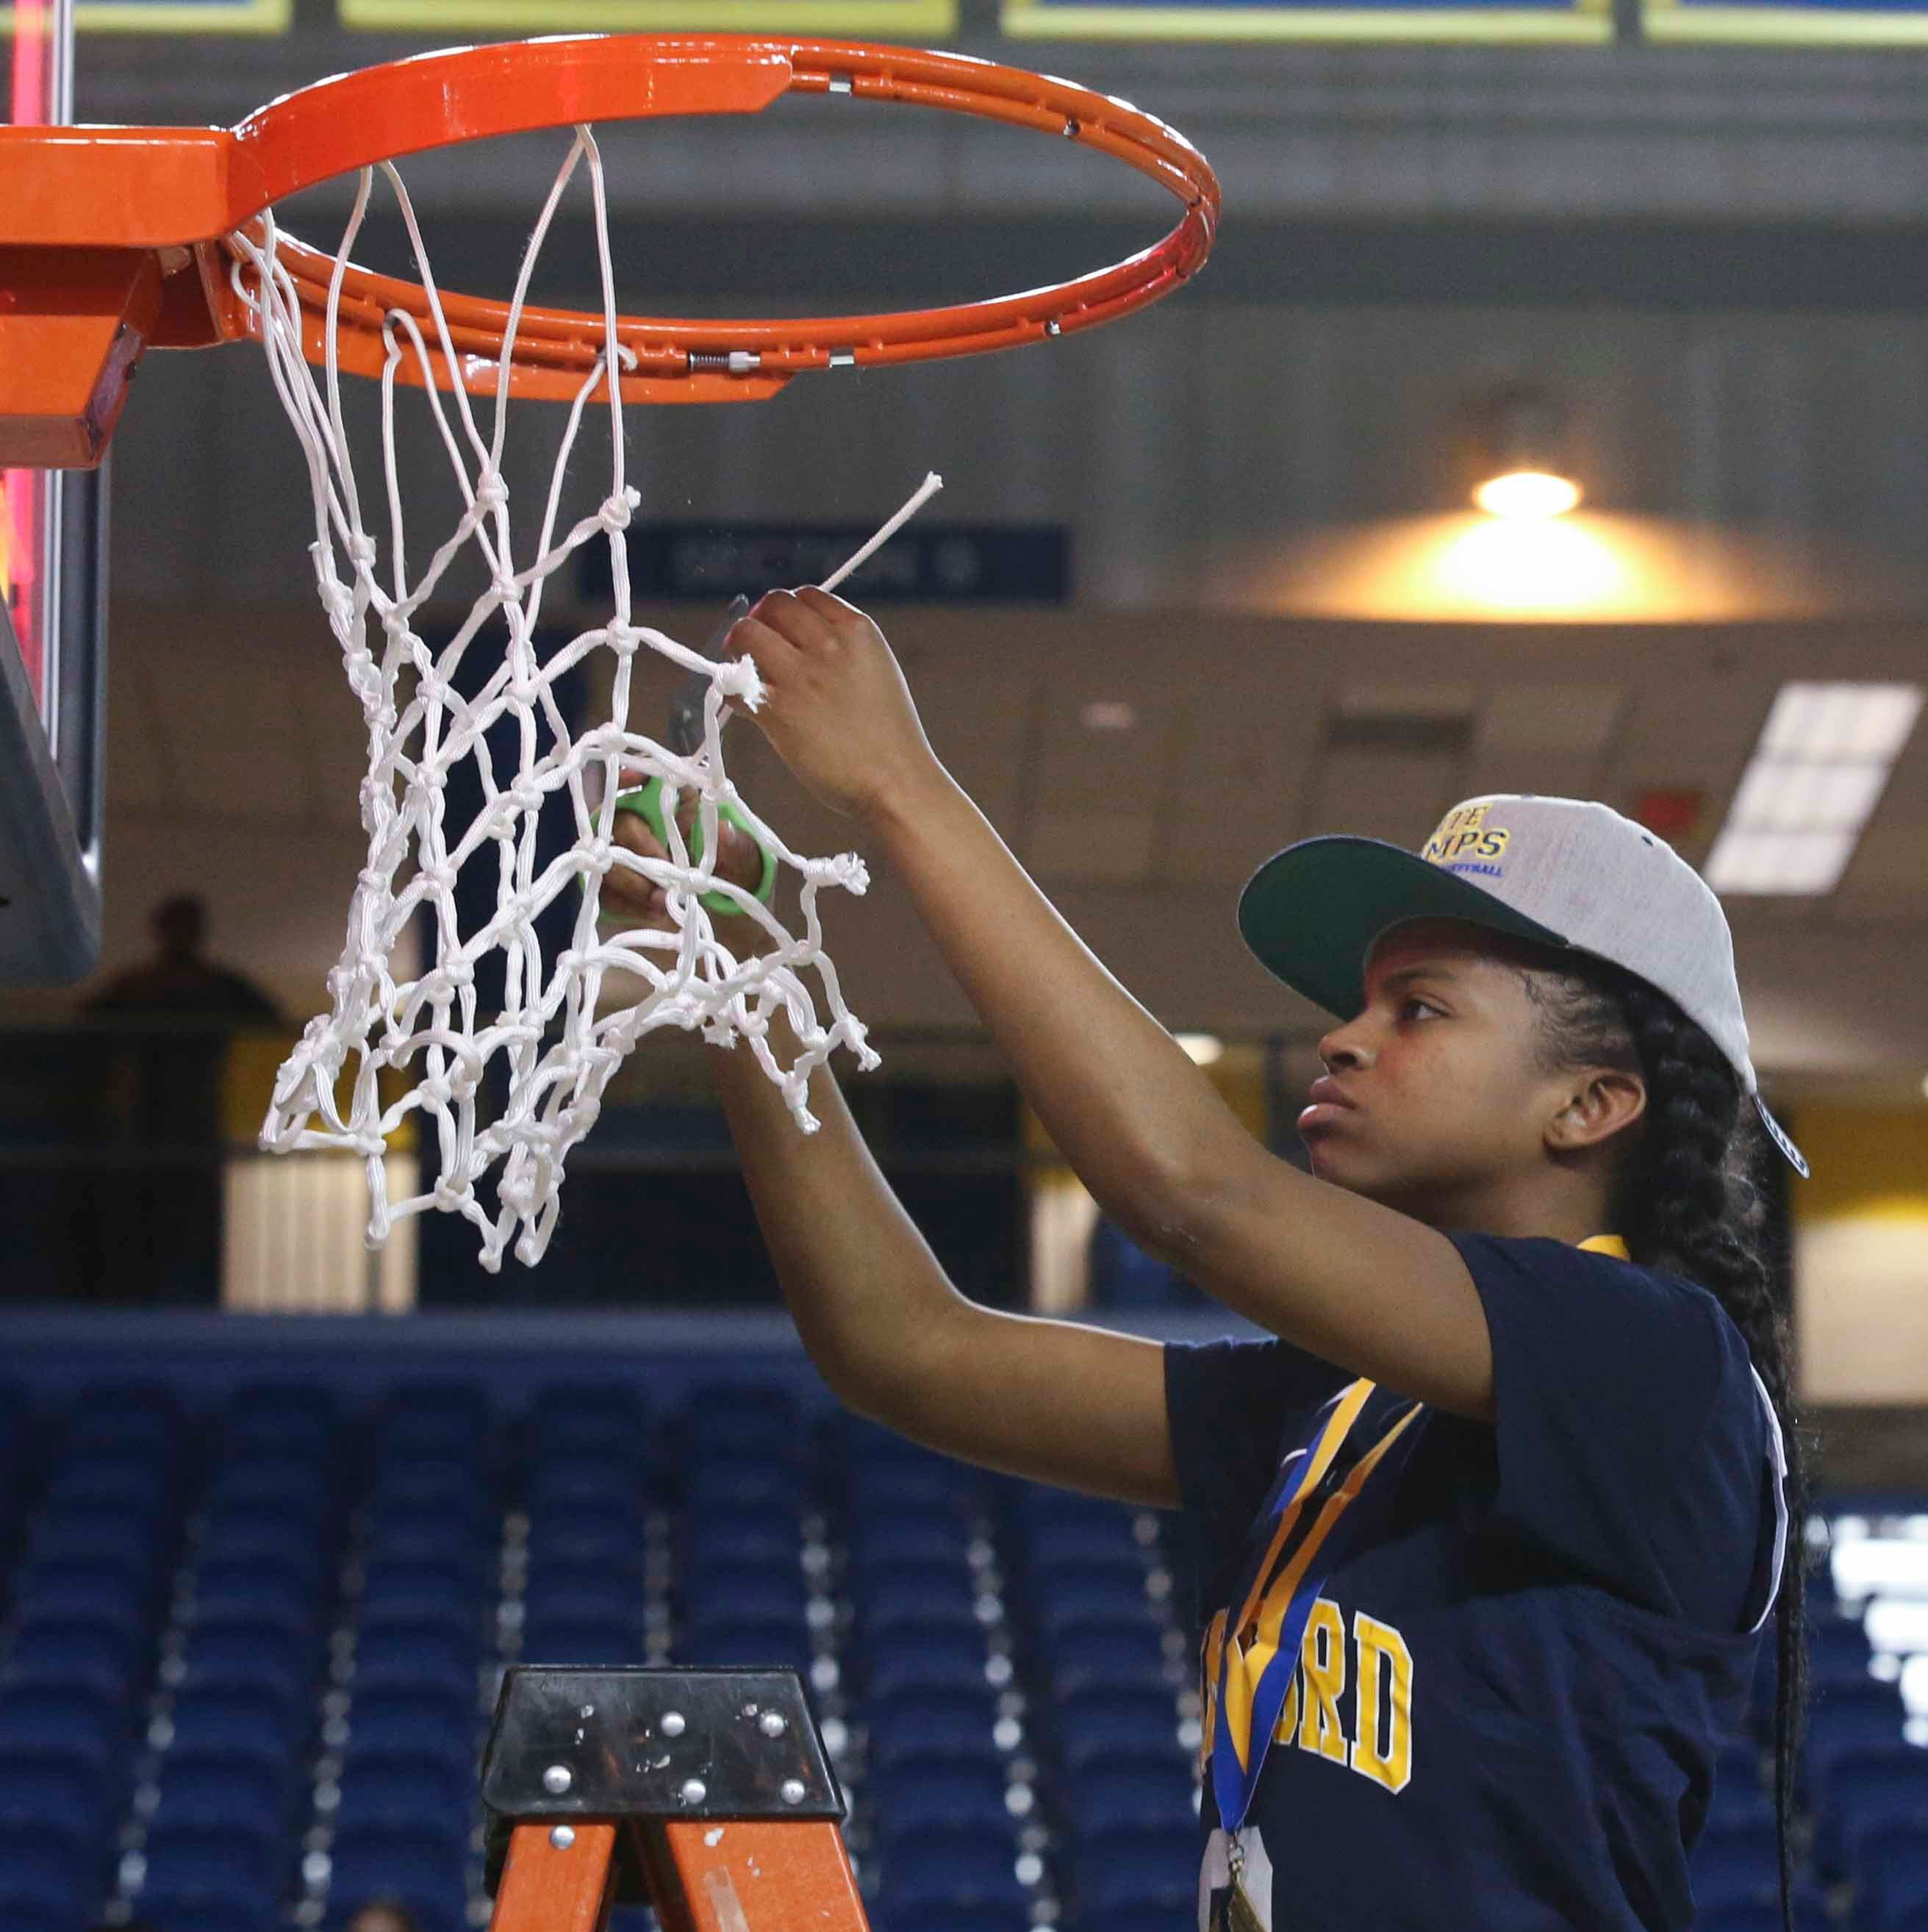 Delaware Girls Basketball Player of the Year still floating after winning shot